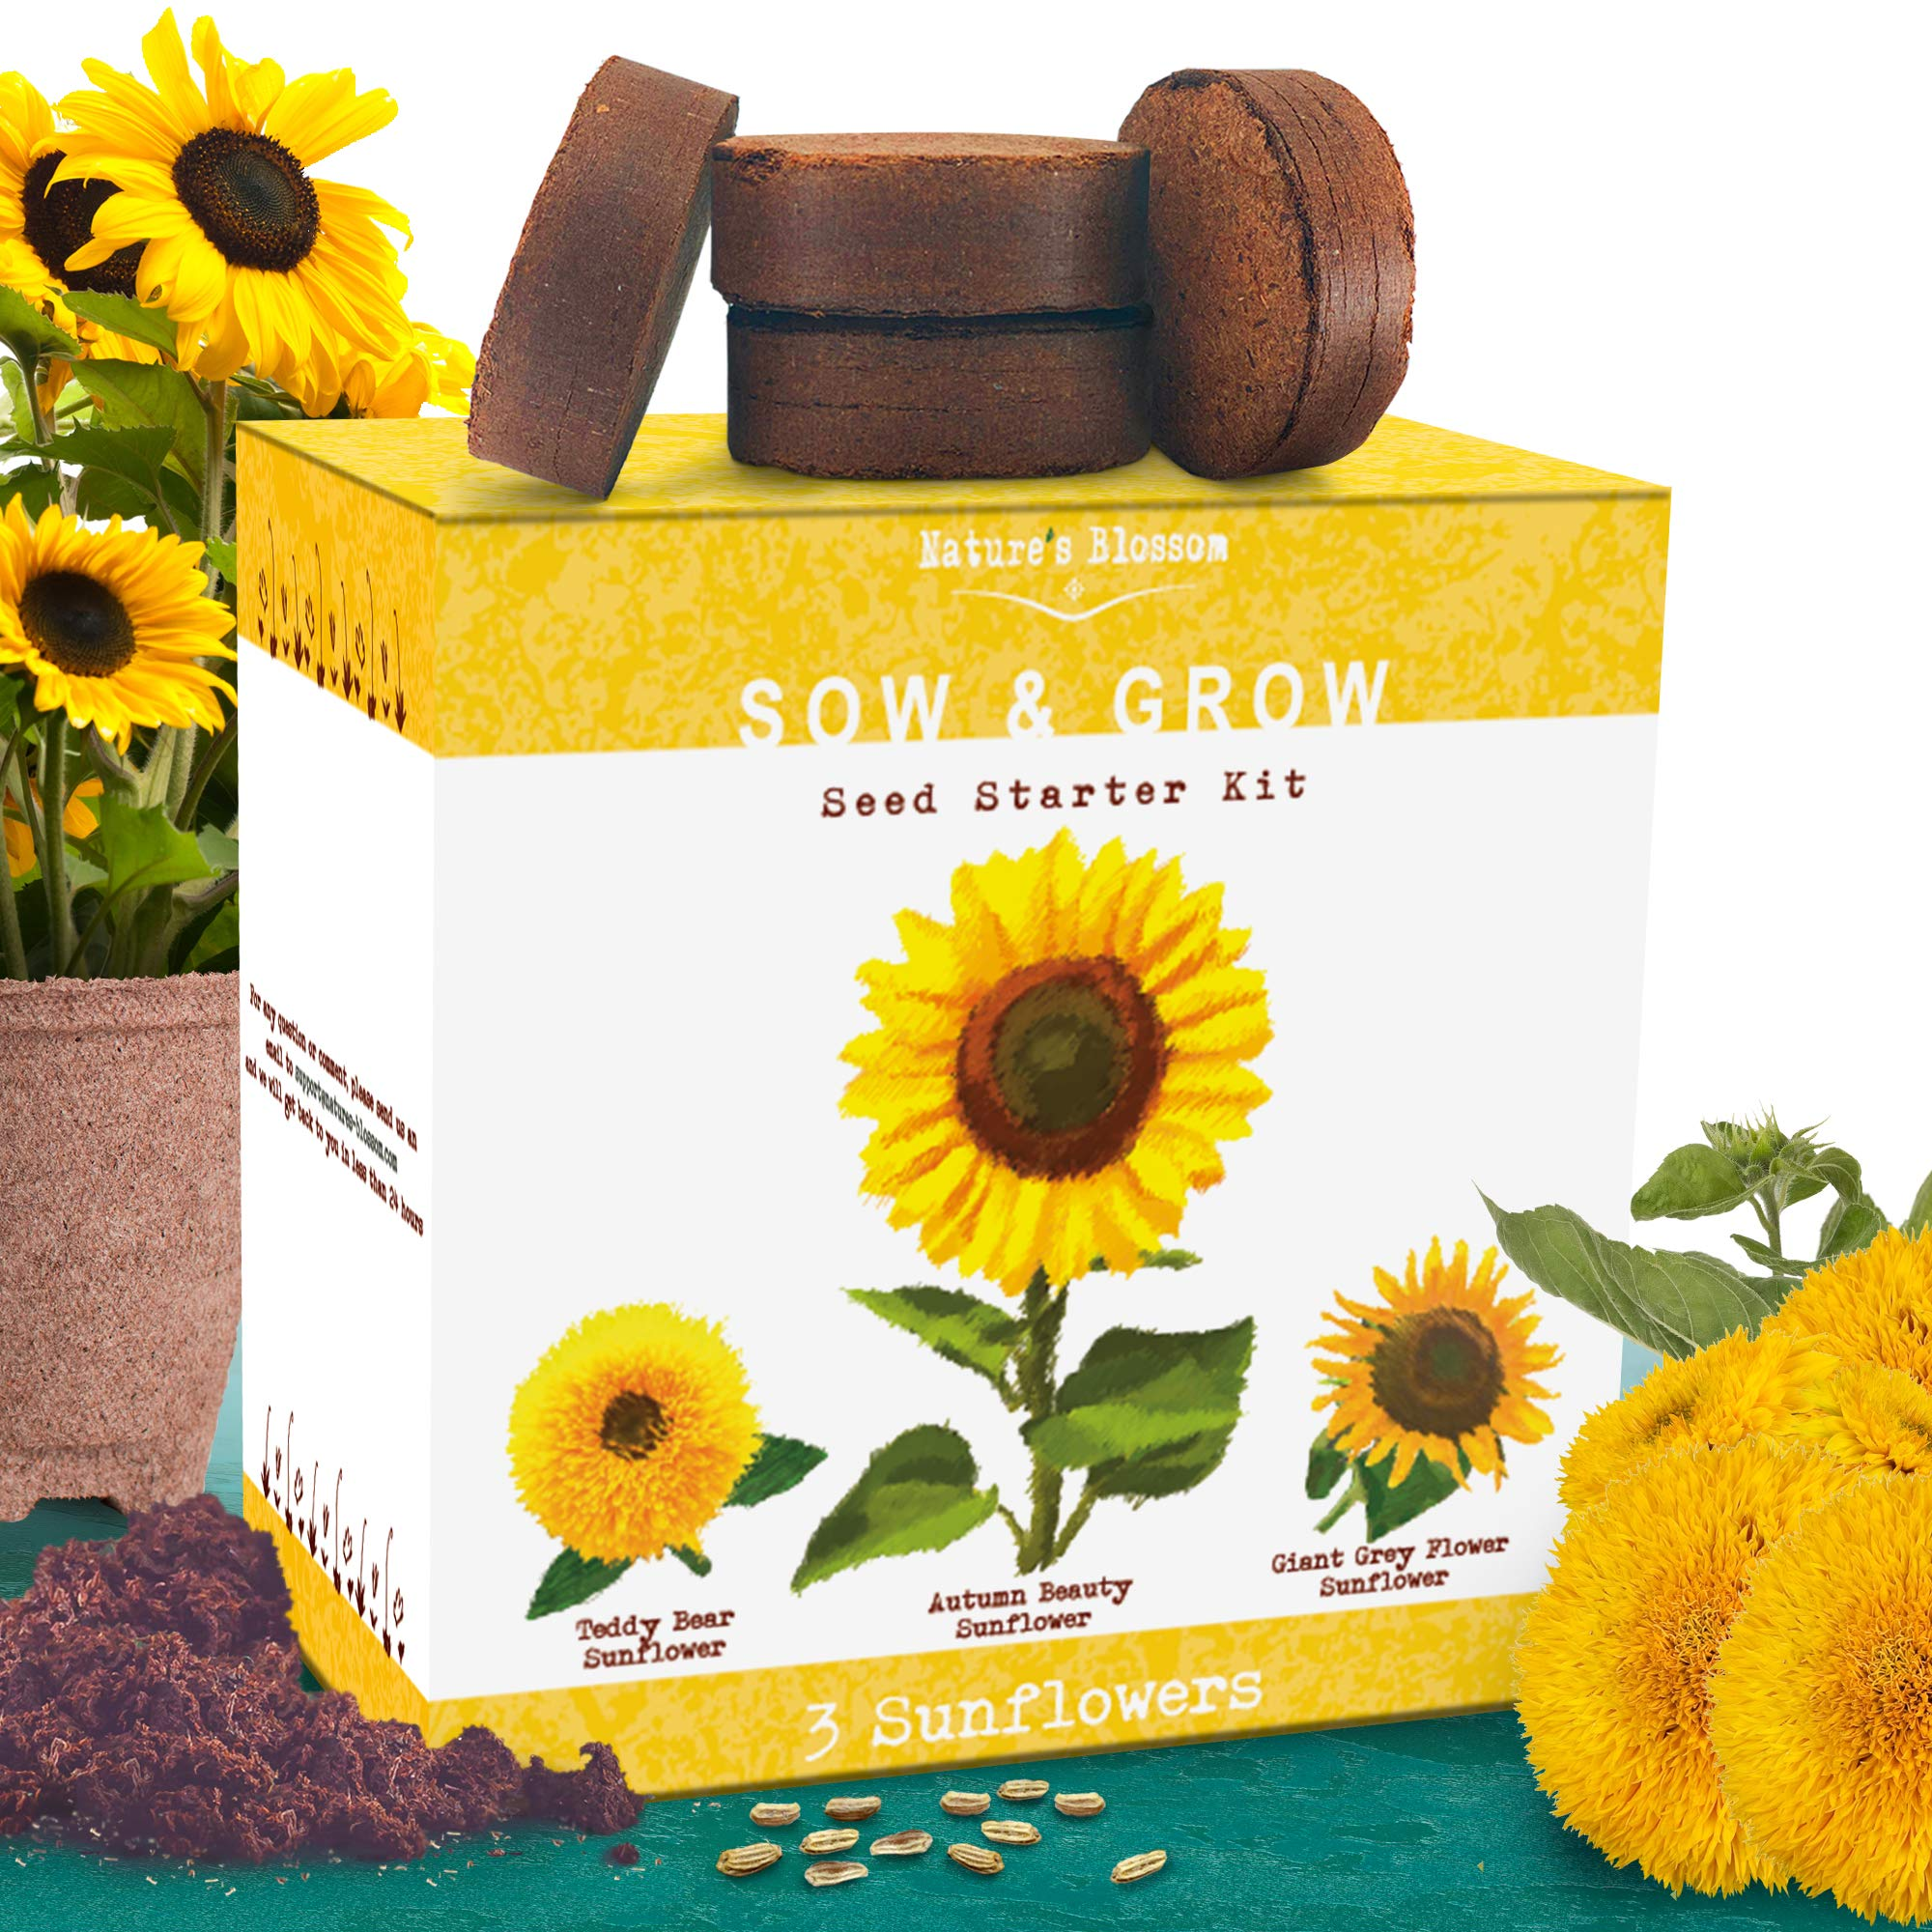 Nature's Blossom Sunflower Growing Kit - Grow 3 Different Sunflowers from Seed. A Complete Beginner Gardeners Growing Set to Start Your Own Indoor Flower Garden.